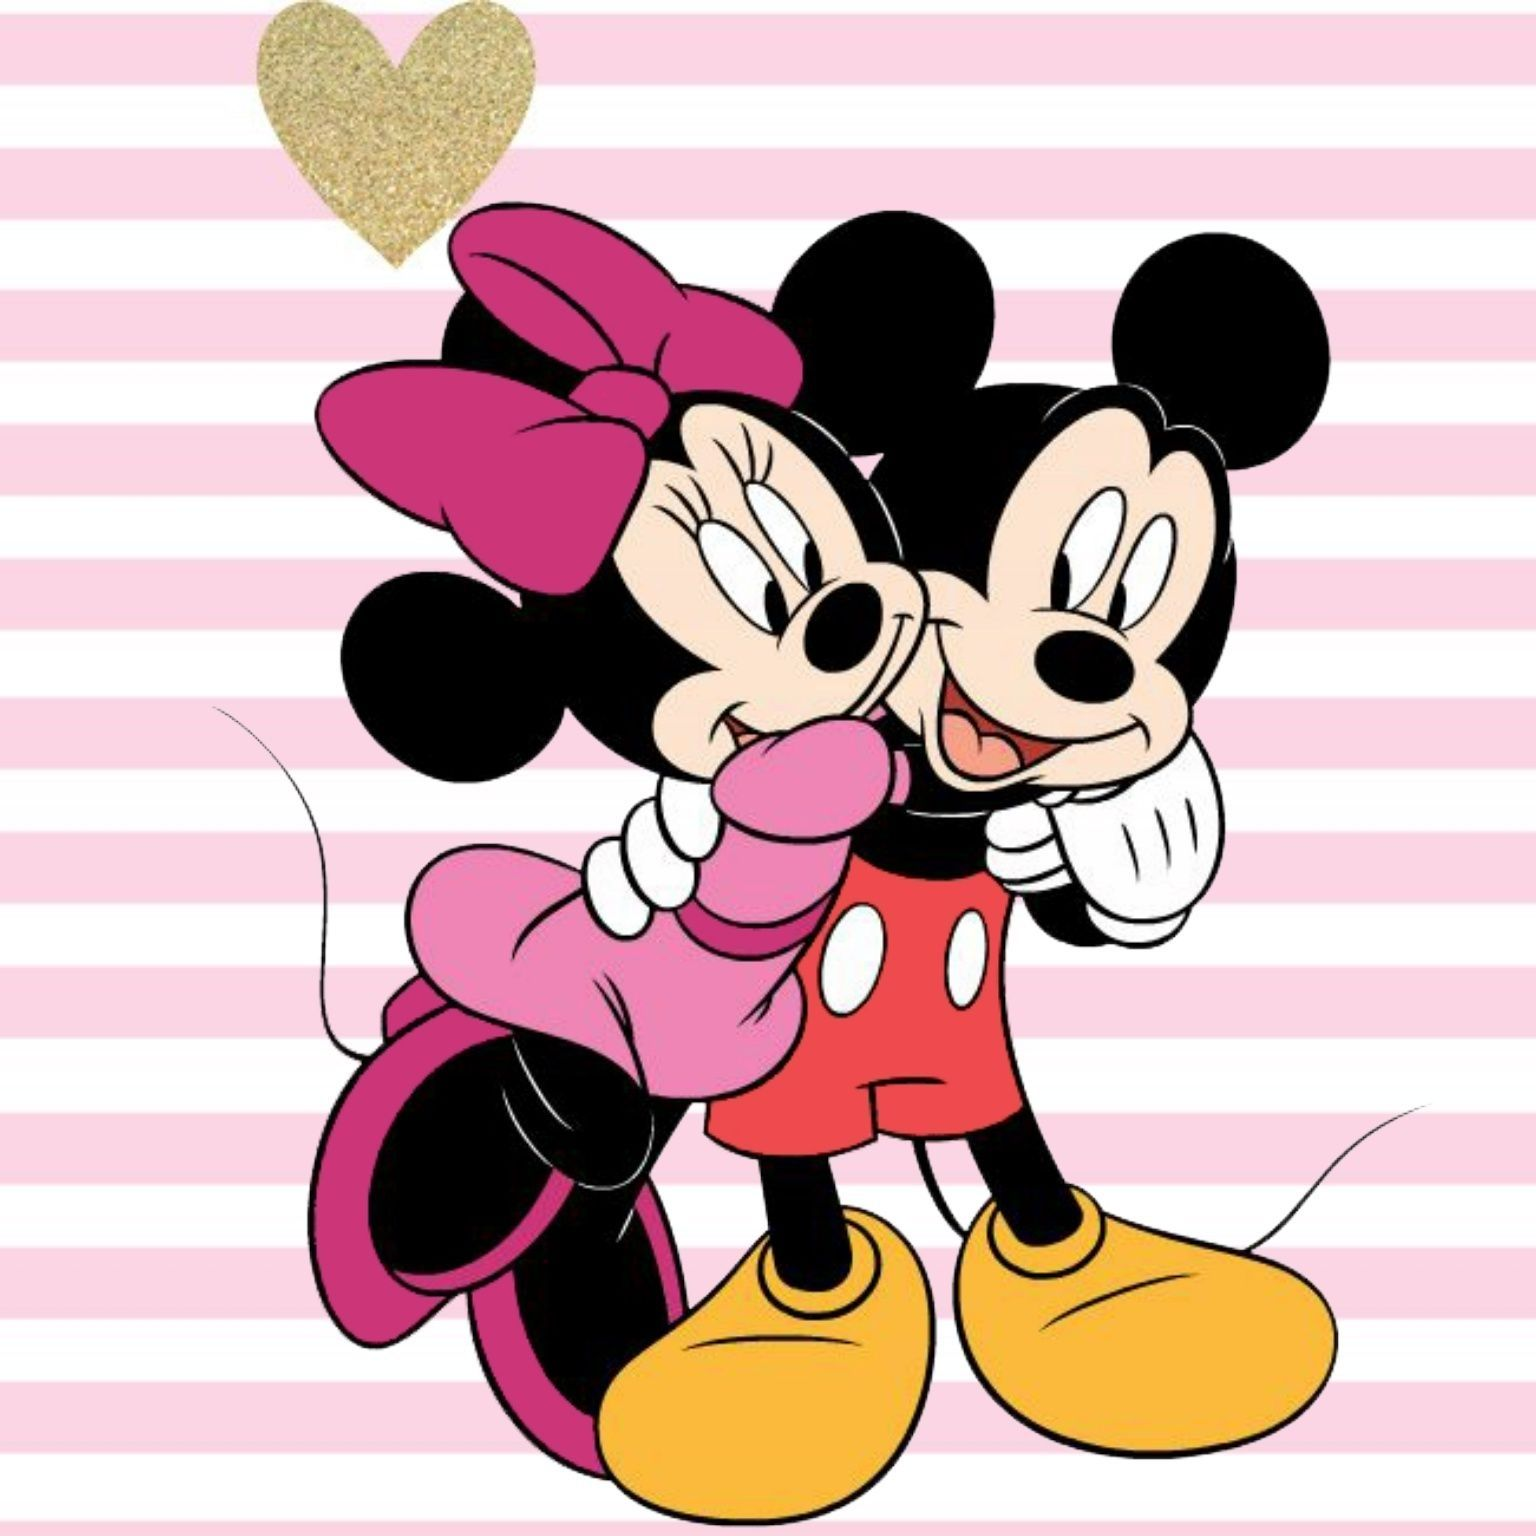 10 Most Popular Images Of Mickey And Minnie Full Hd 1080p For Pc Background Mickey Mouse Mickey Clip Art